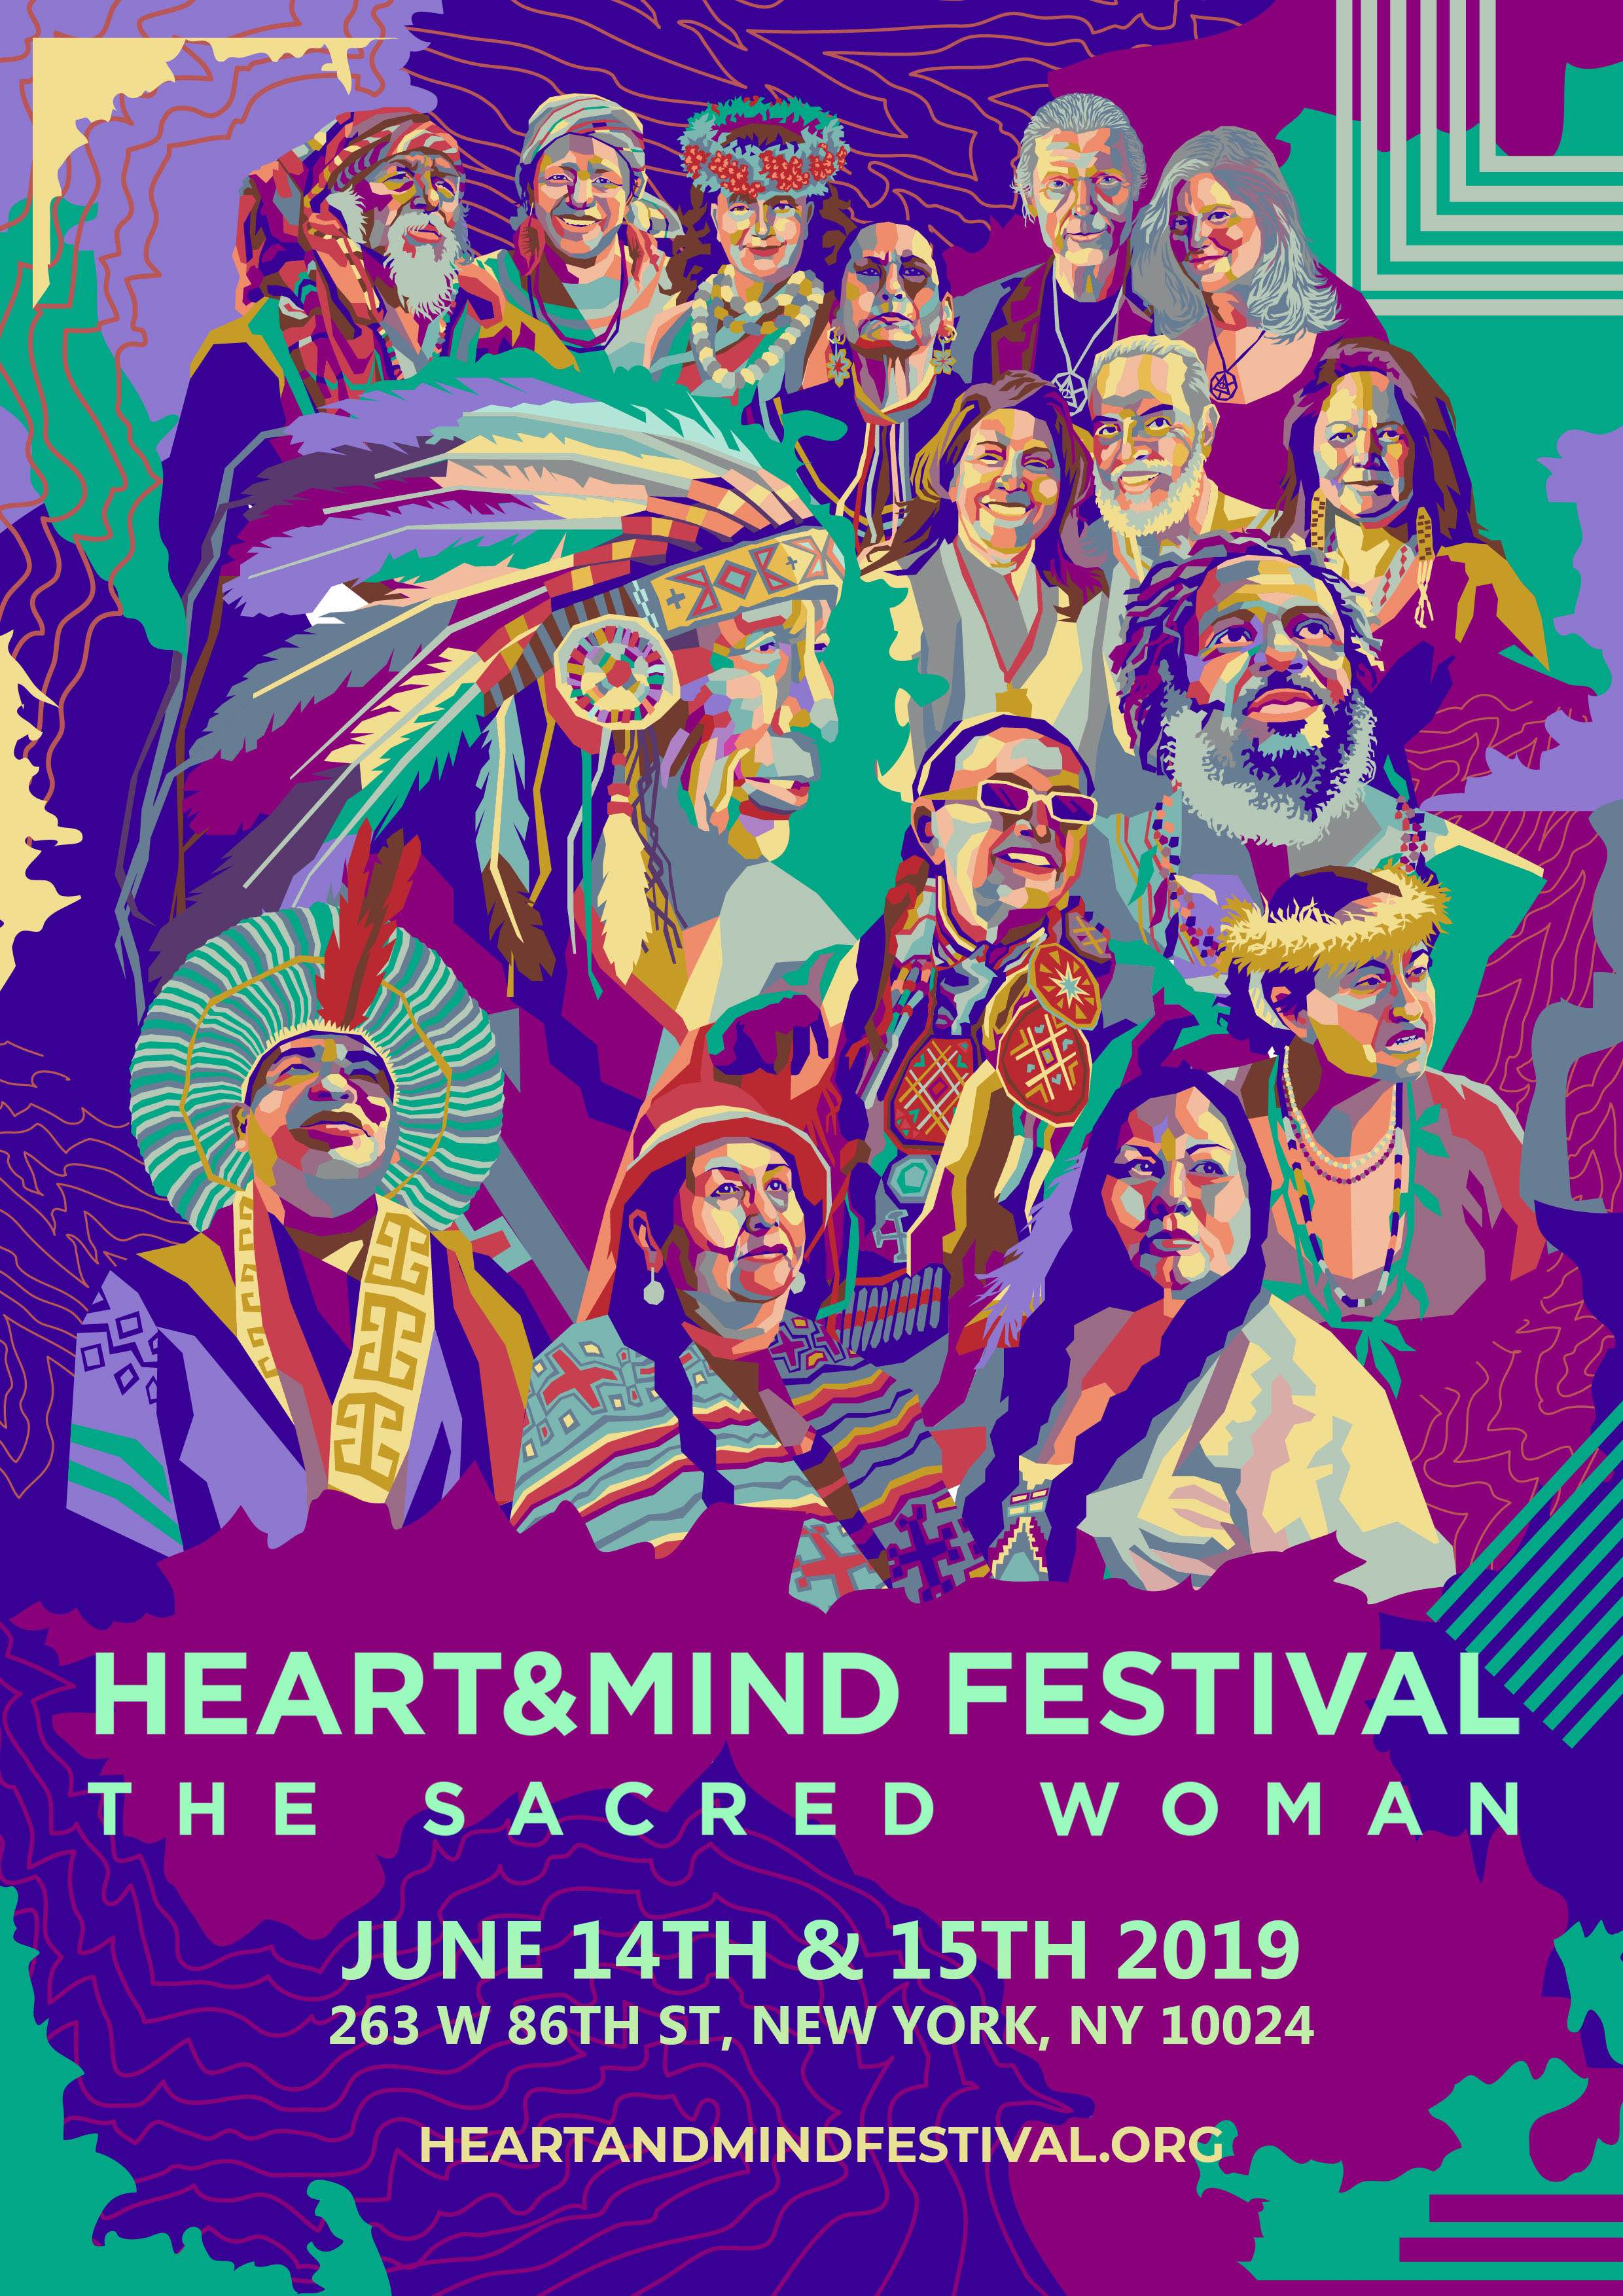 3POSTER THE SACRED WOMAN - HEART & MIND FESTIVAL-14 web.jpg